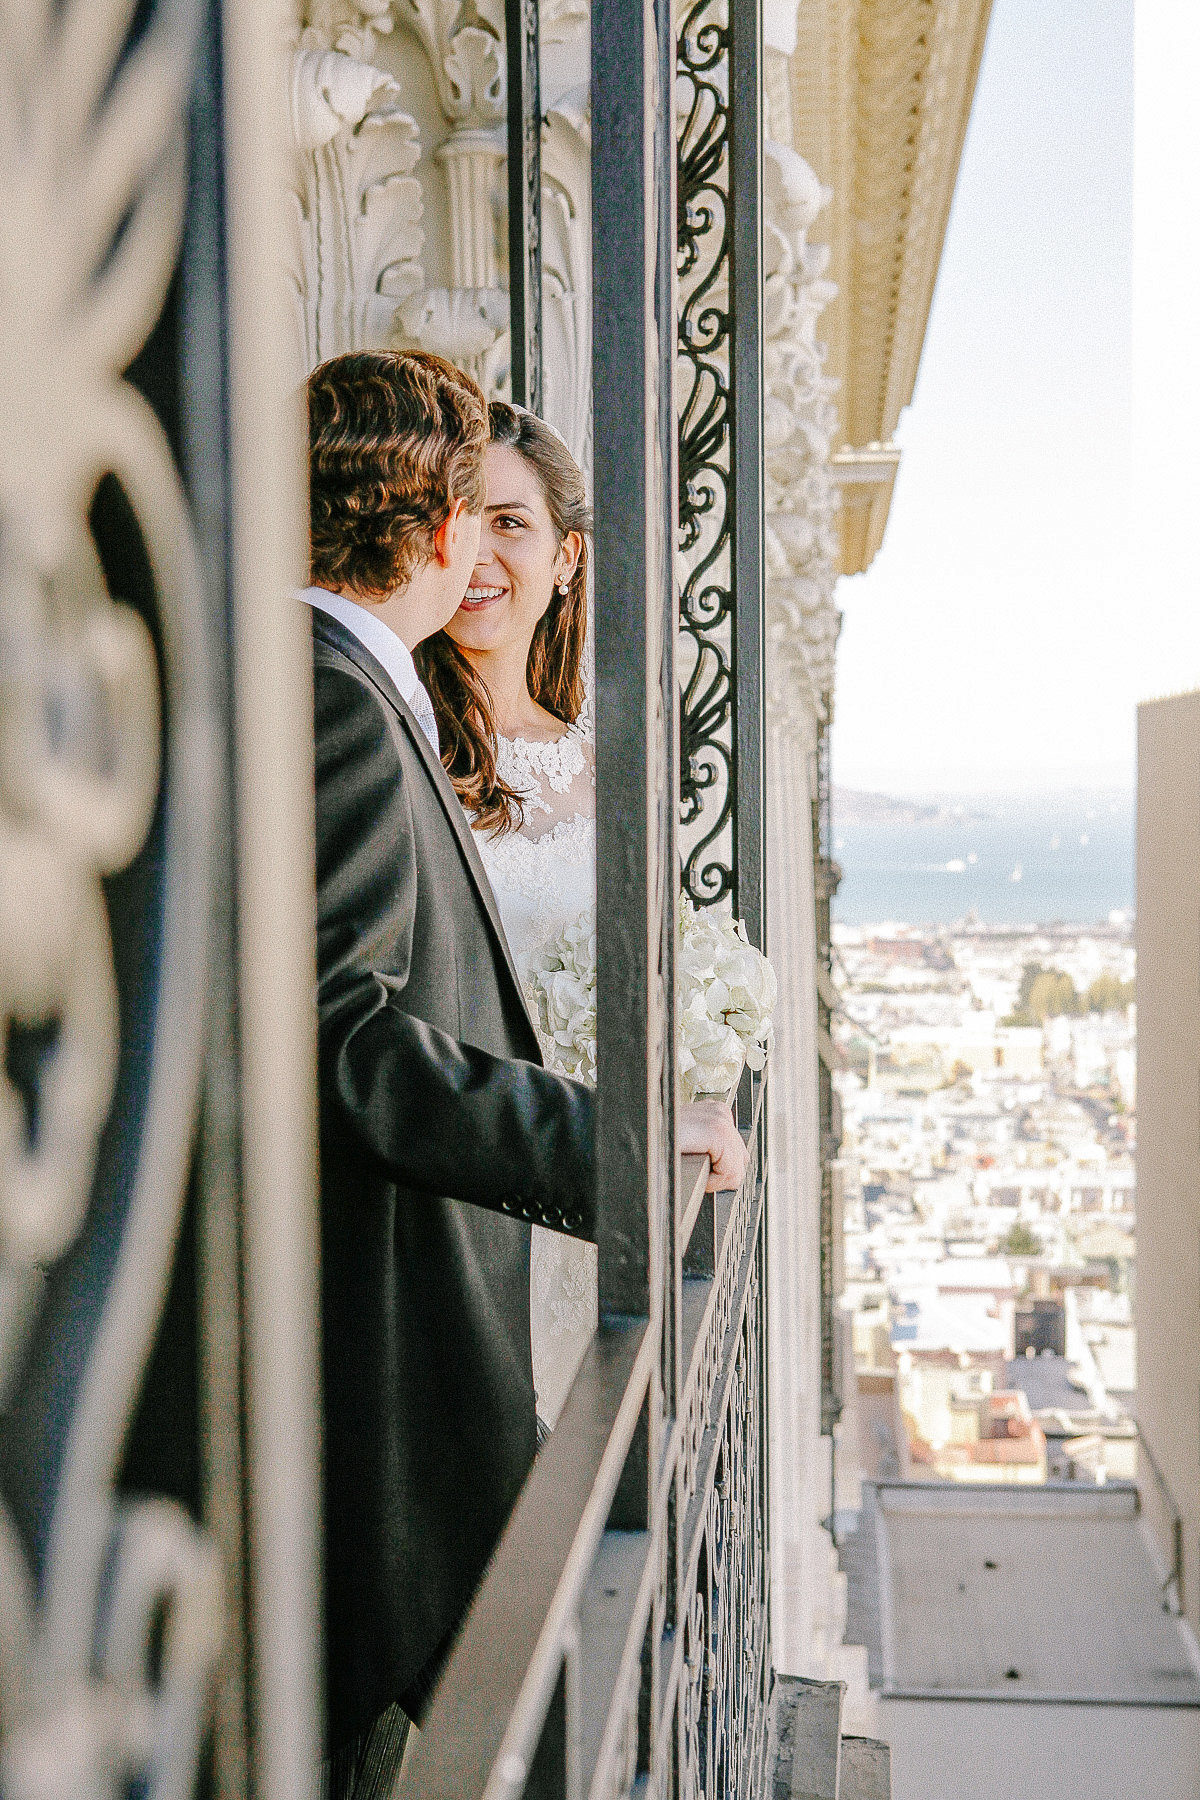 A couple at their wedding at the Fairmont Hotel in San Francisco.